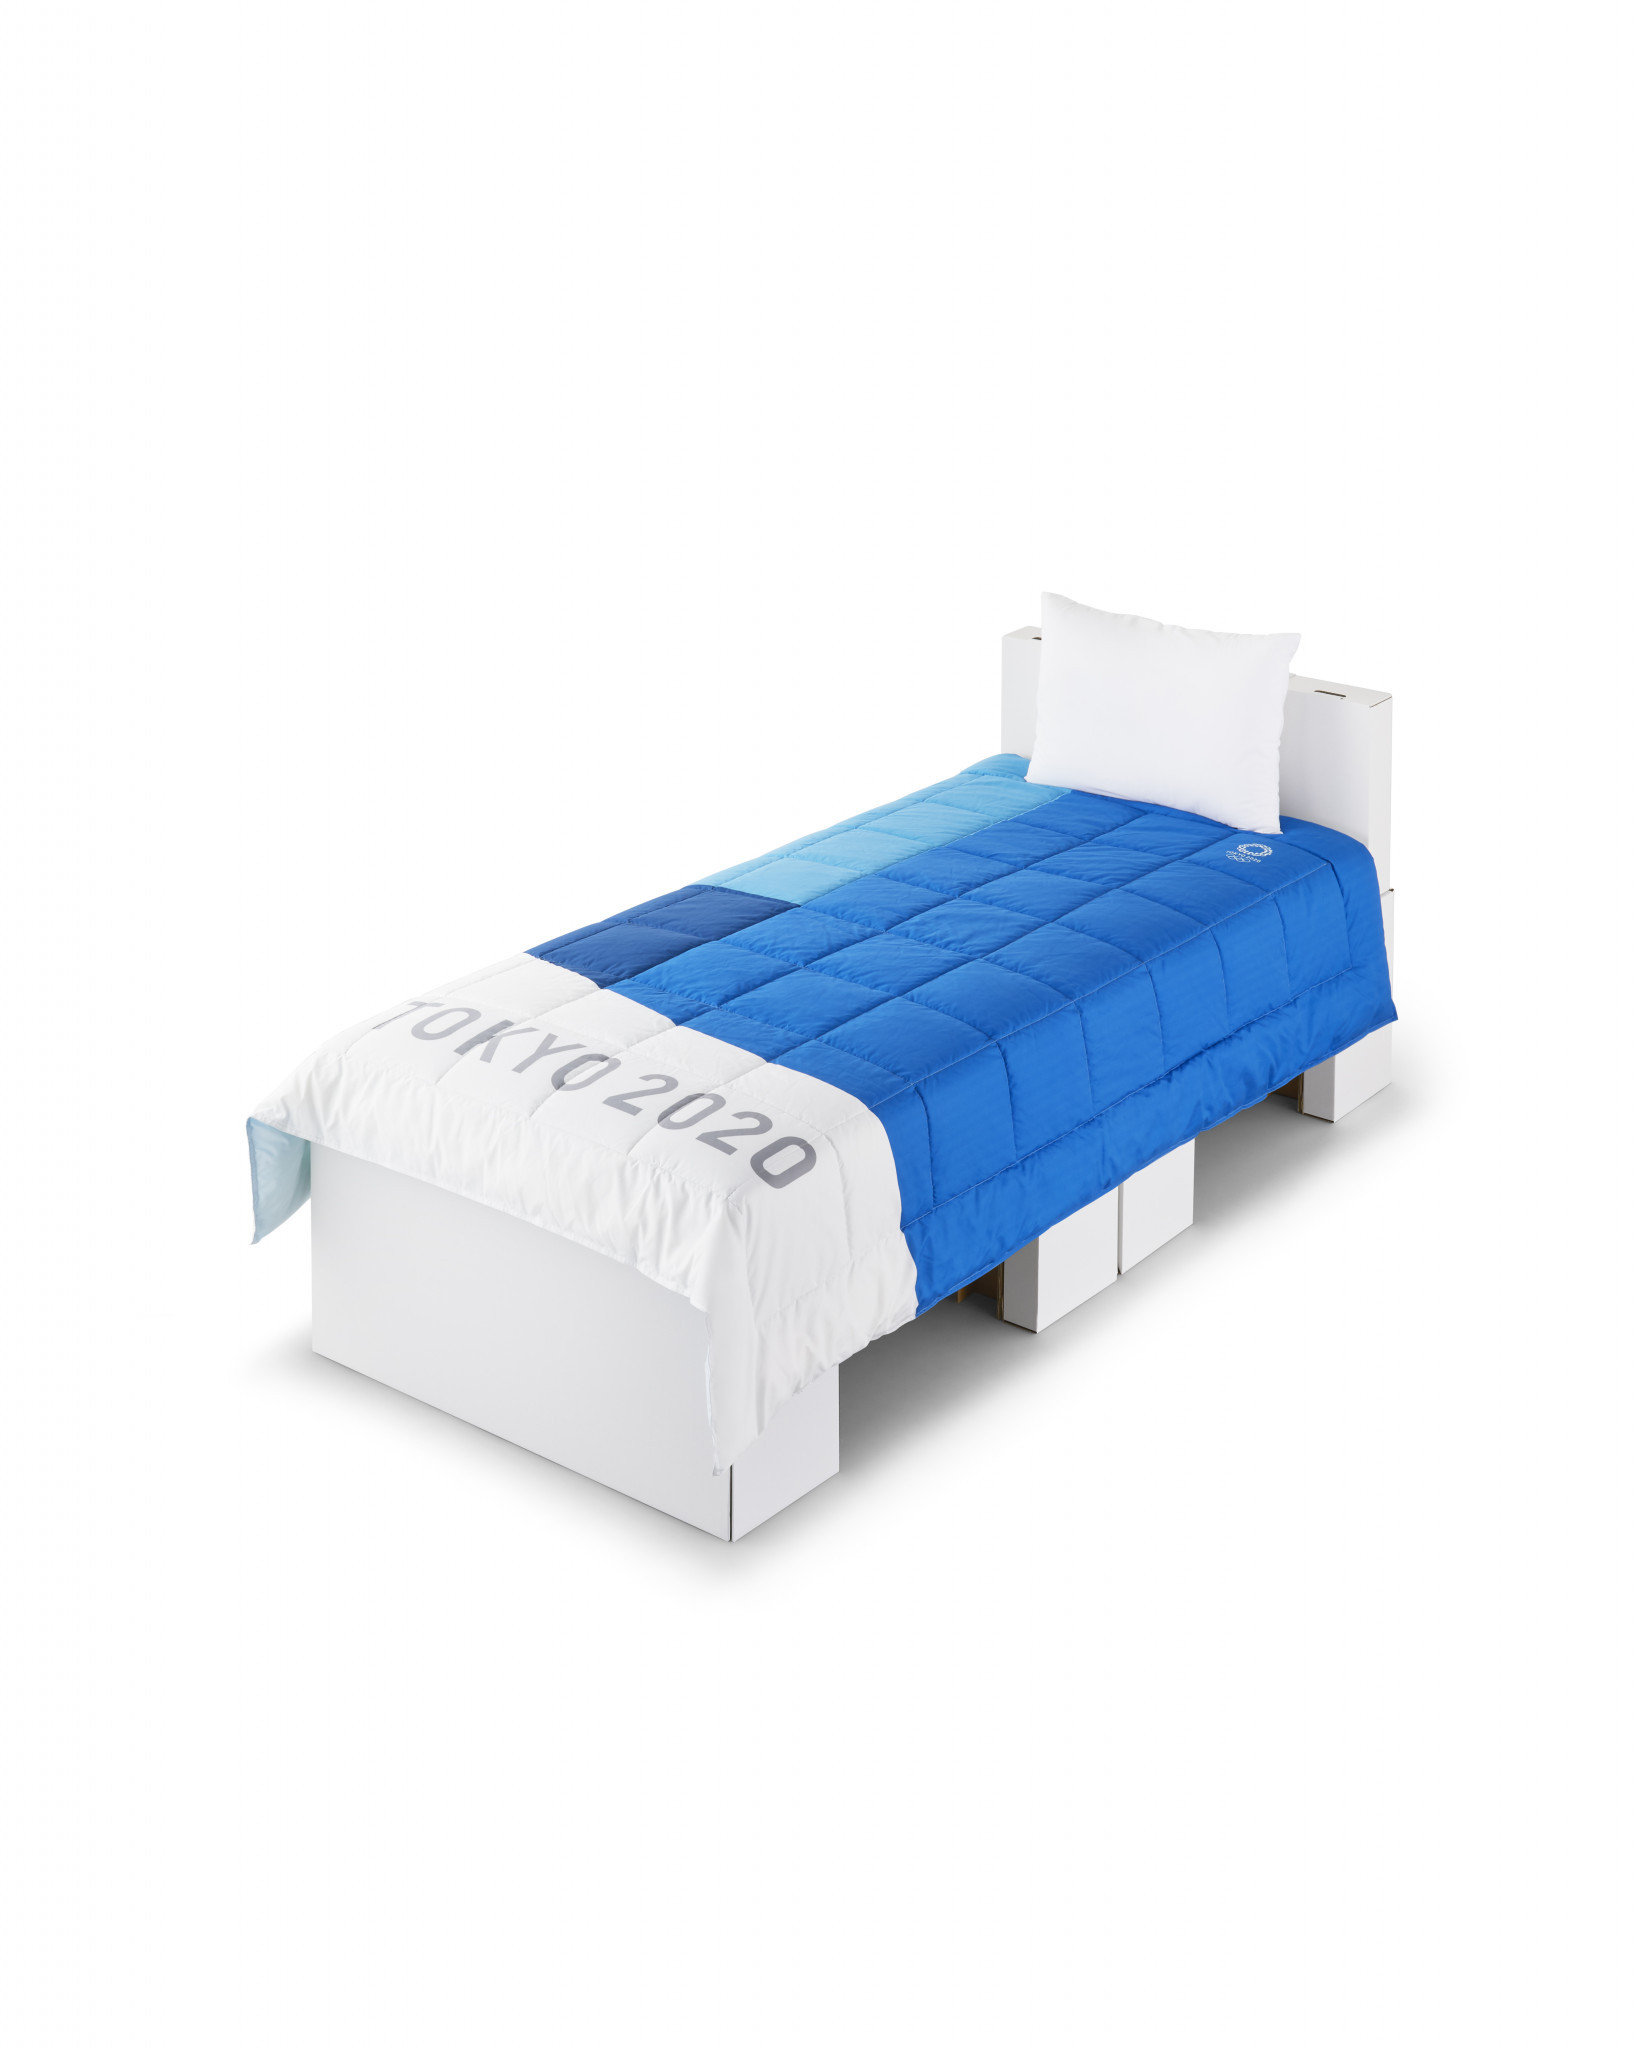 Tokyo 2020 unveil lightweight beds for athletes and mattresses